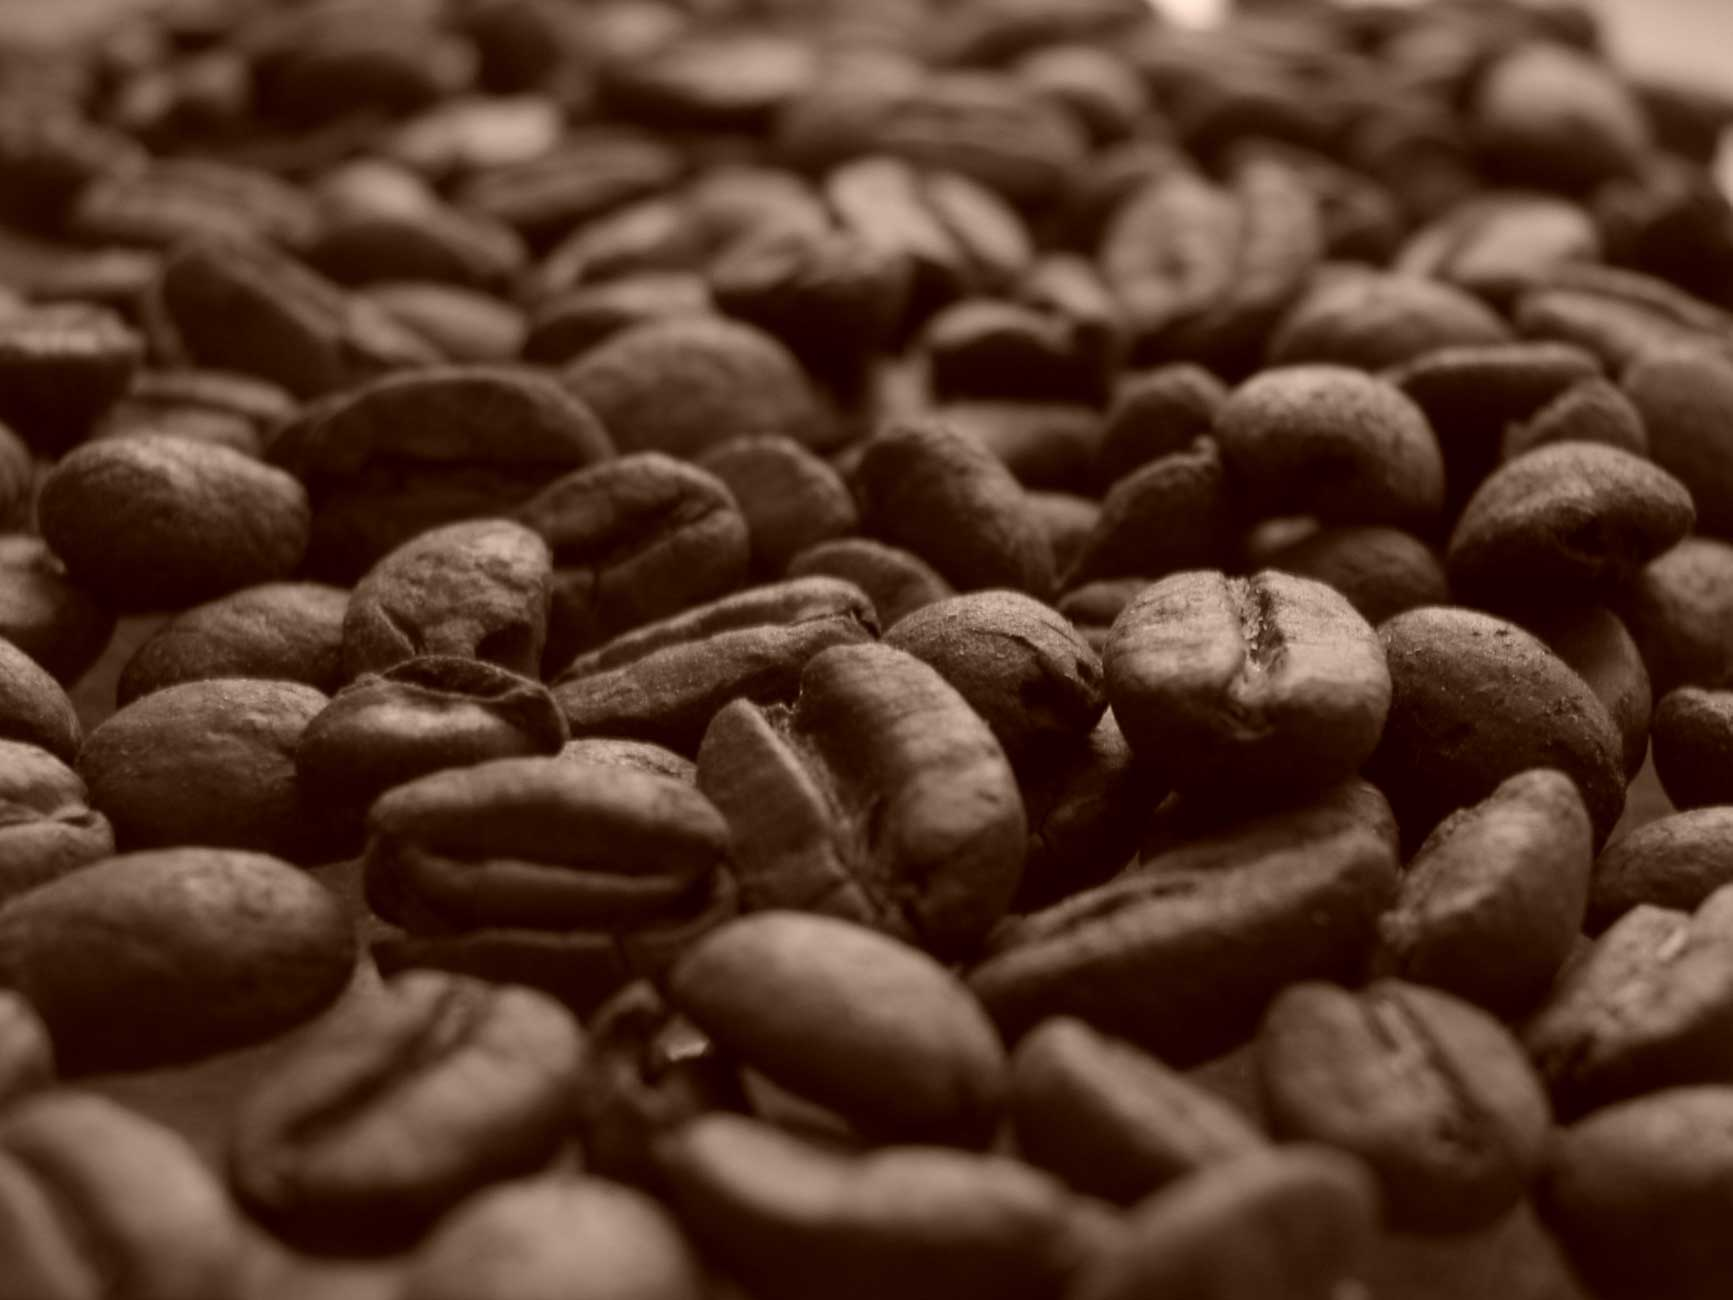 15 Health Benefits of Coffee: Positive and Negative Effects - I Need Medic